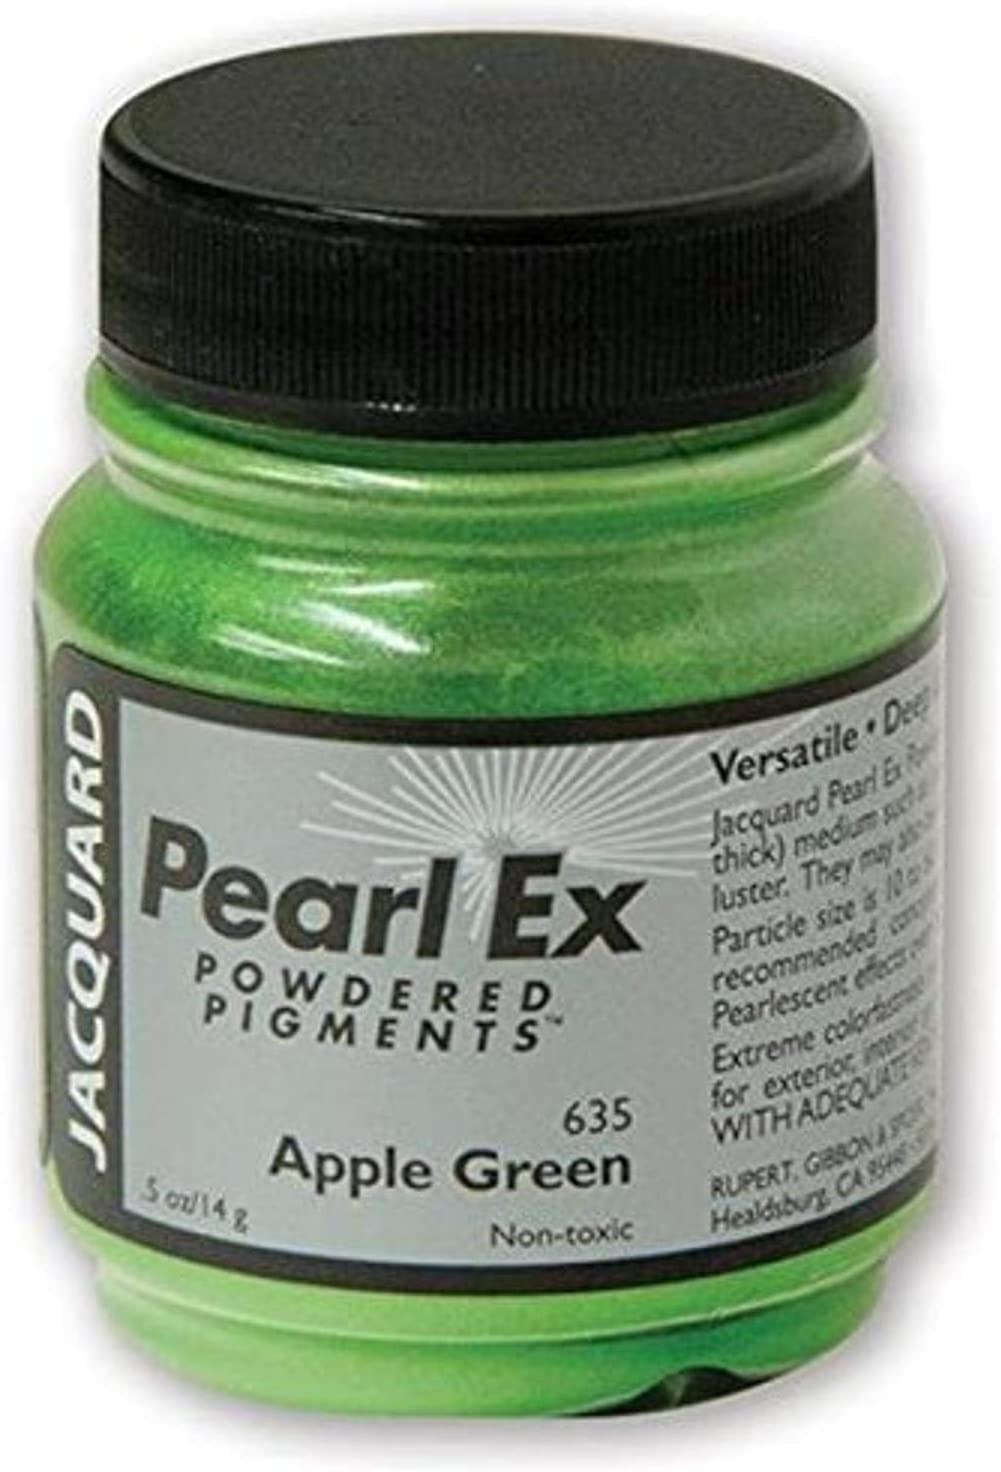 Jacquard Products Pearl Ex Powdered Pigments, 14g, Apple Green